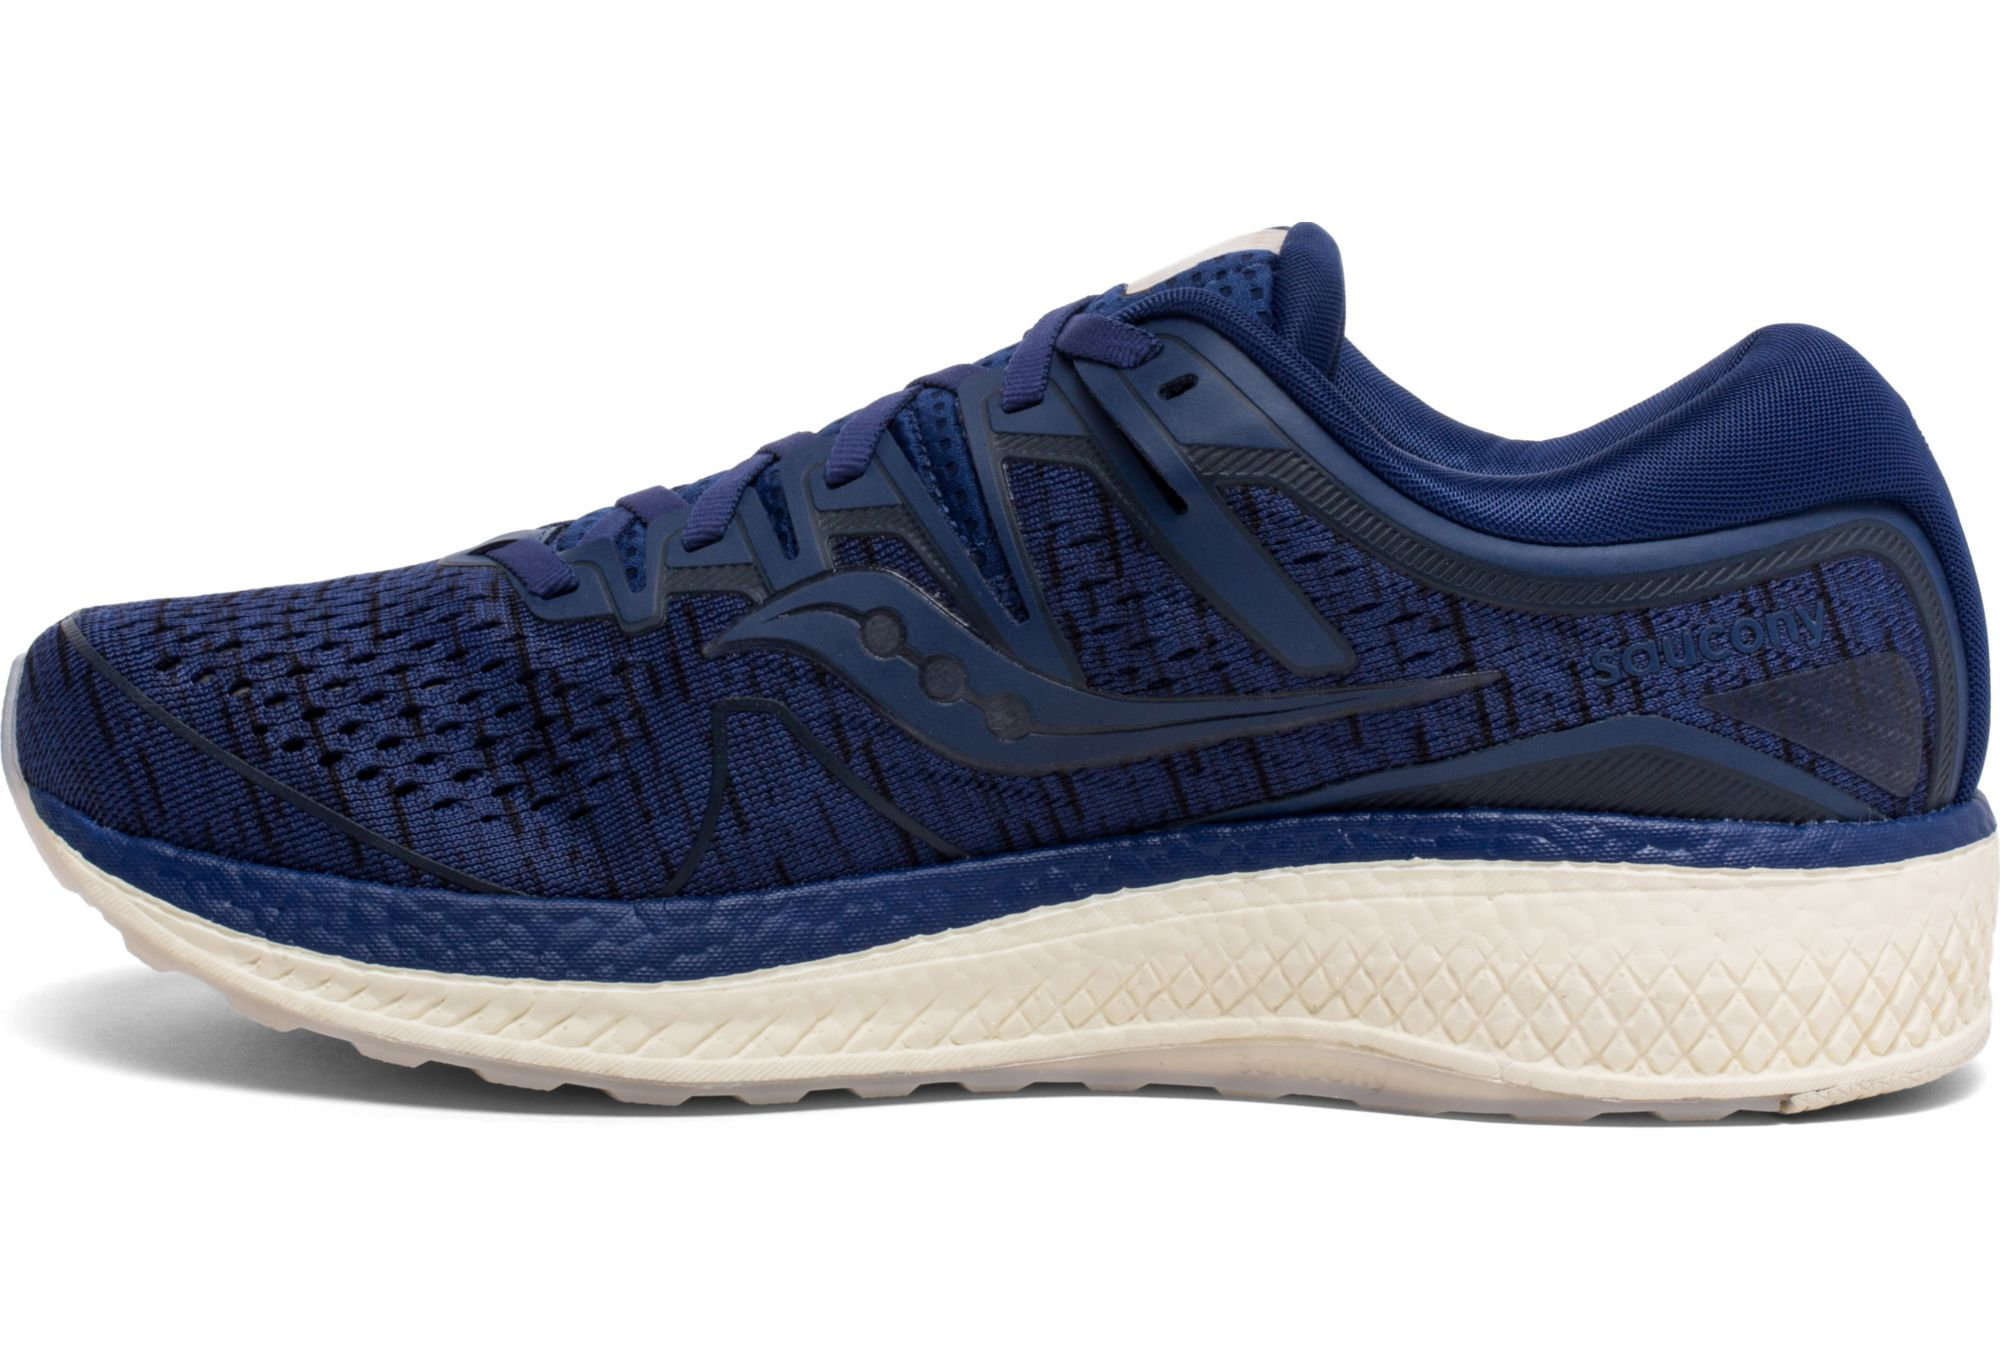 6a9bc49a Saucony Triumph ISO 5 Running Shoes Navy Shade